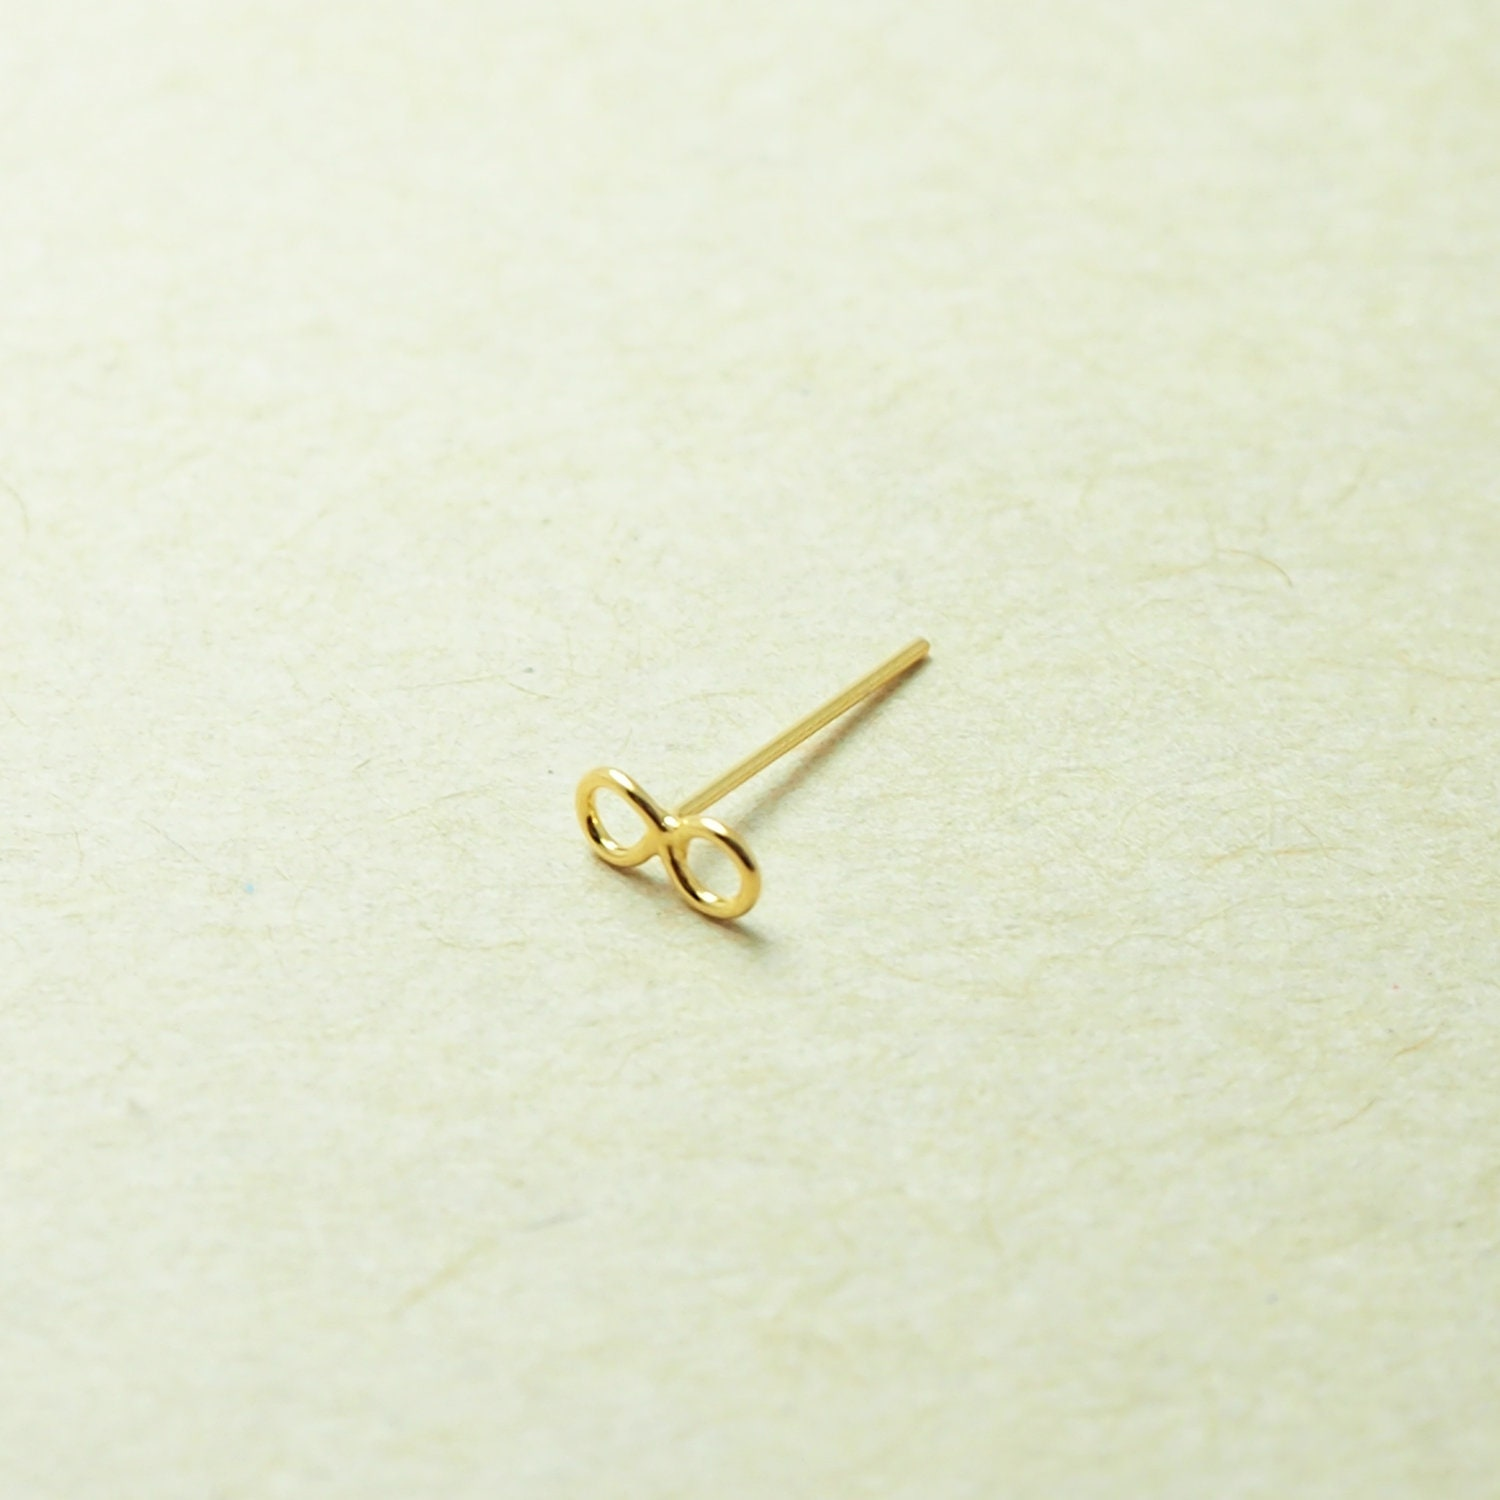 24G  Z32 Gold Infinity Fish Tail Nose Stud Infinity nose stud Nose jewelry Bend it yourself